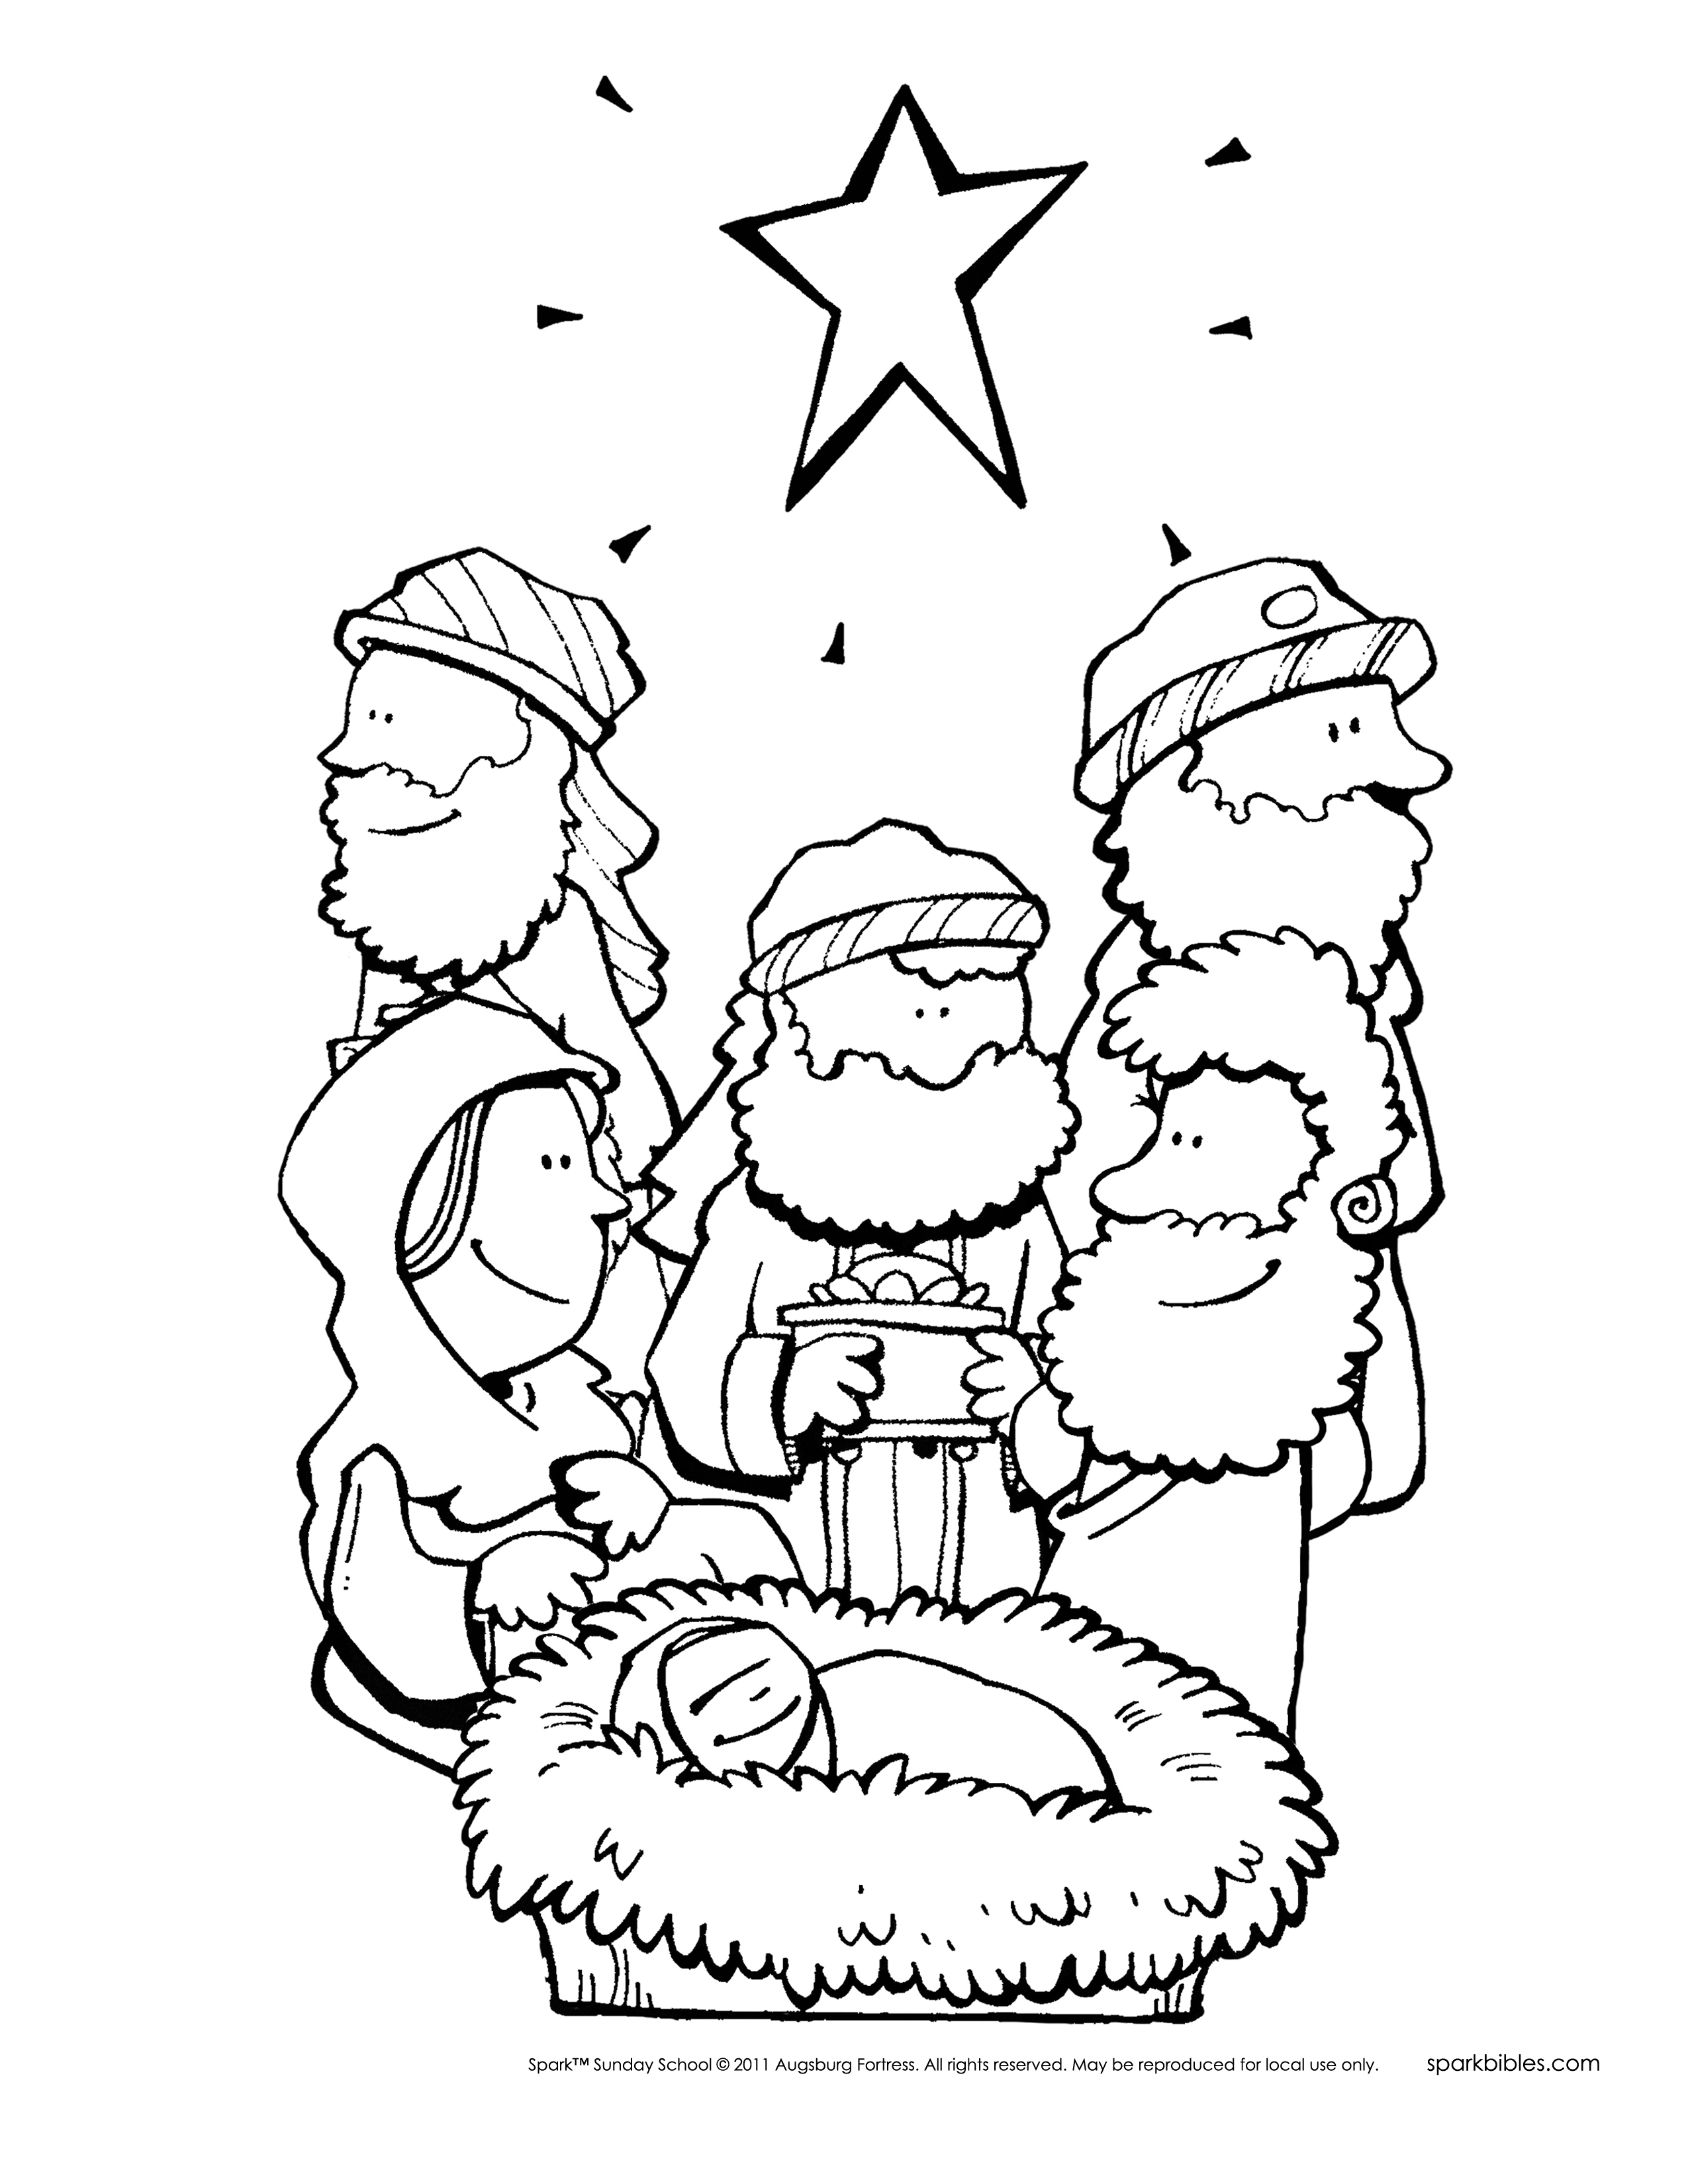 Clip Art Christmas Coloring Pages For Sunday School sunday school christmas coloring pages eassume com for coloring